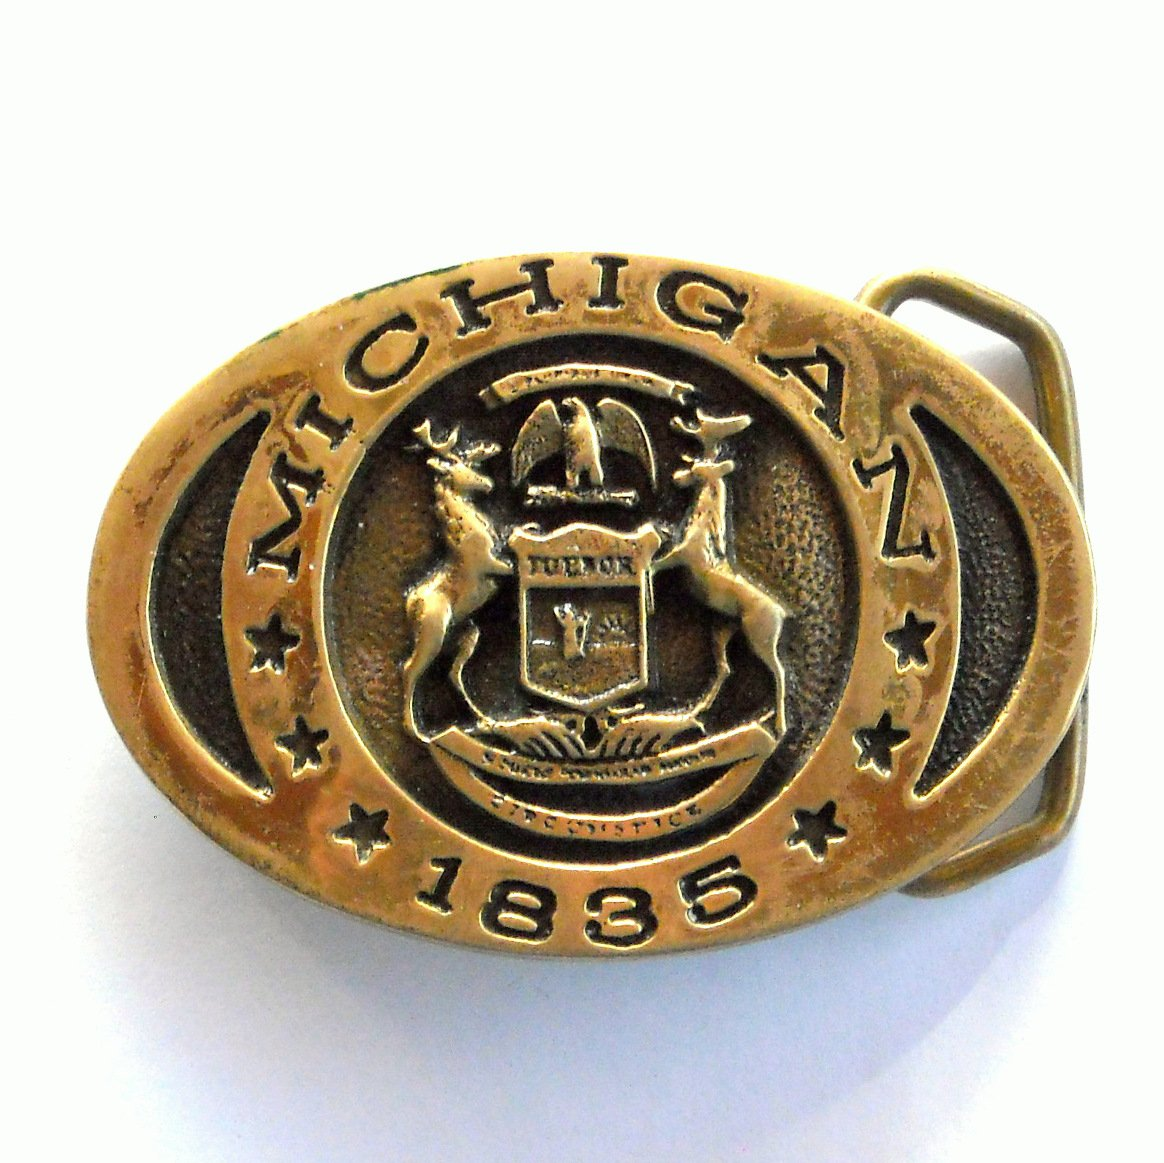 Vintage Michigan State Seal Heritage Mint EB 0610 Solid Brass belt buckle